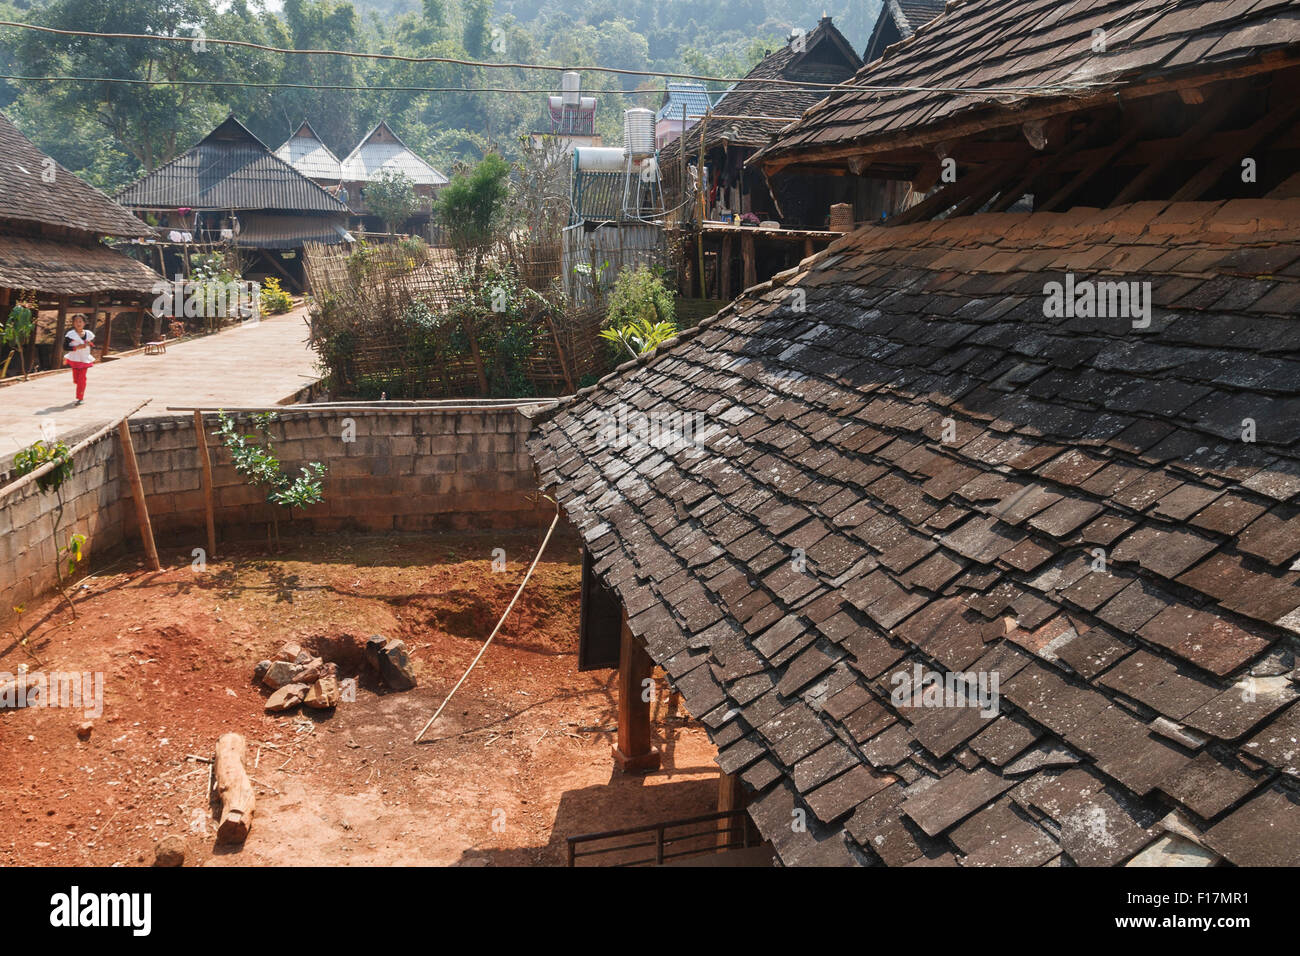 Looking out over roof of traditional hut in rural village in Xishuangbanna, Yunnan, China - Stock Image